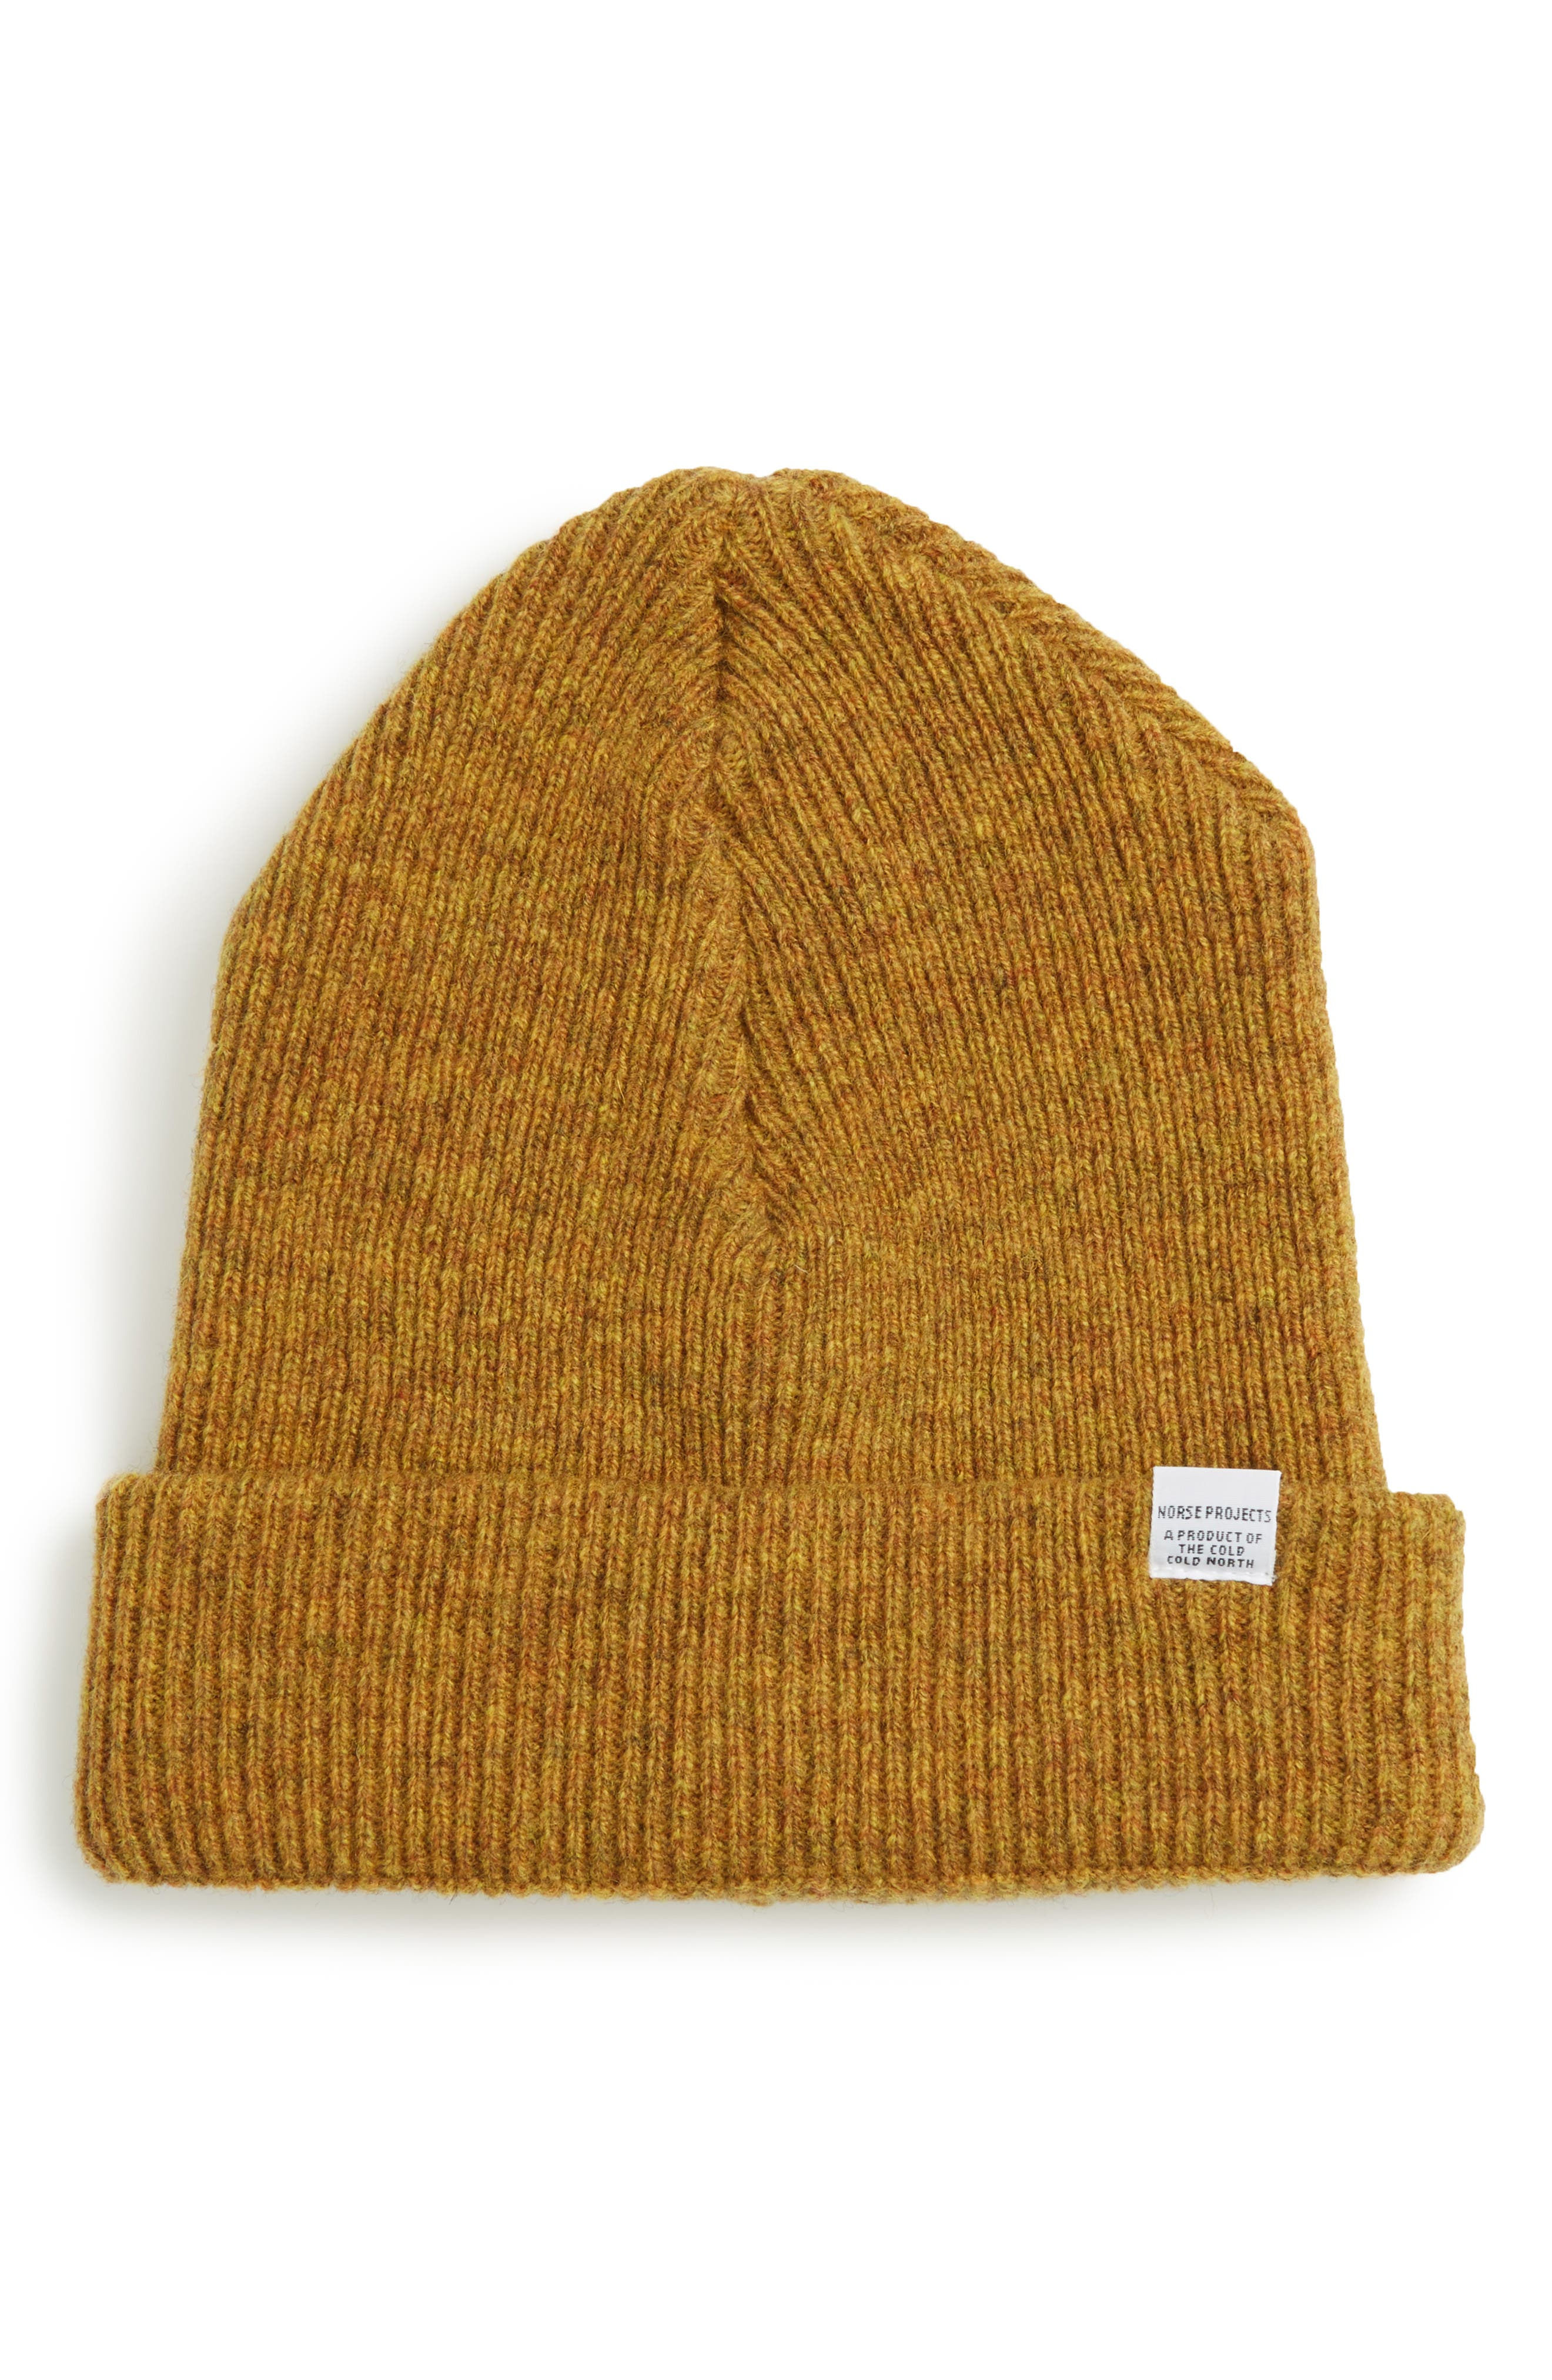 Norse Project Wool Knit Cap